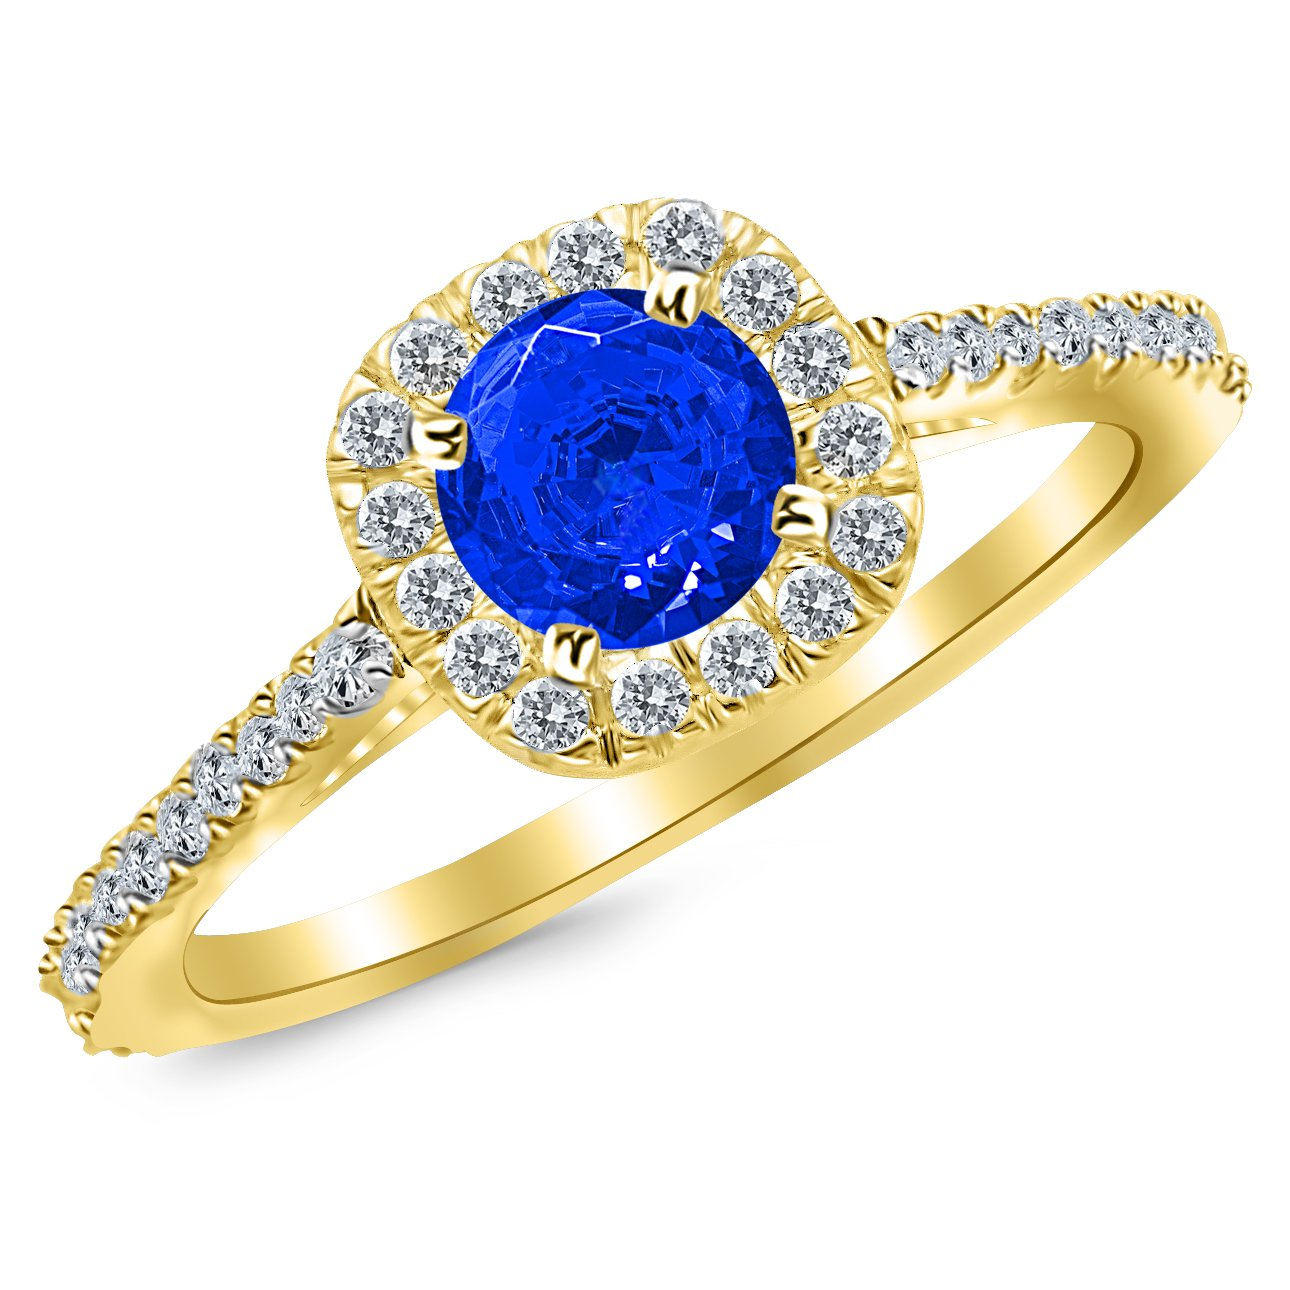 2.35 Carat 14K Yellow Gold Gorgeous Classic Cushion Halo Style Diamond Engagement Ring with a 2 Carat Natural Blue Sapphire Center (Heirloom Quality)